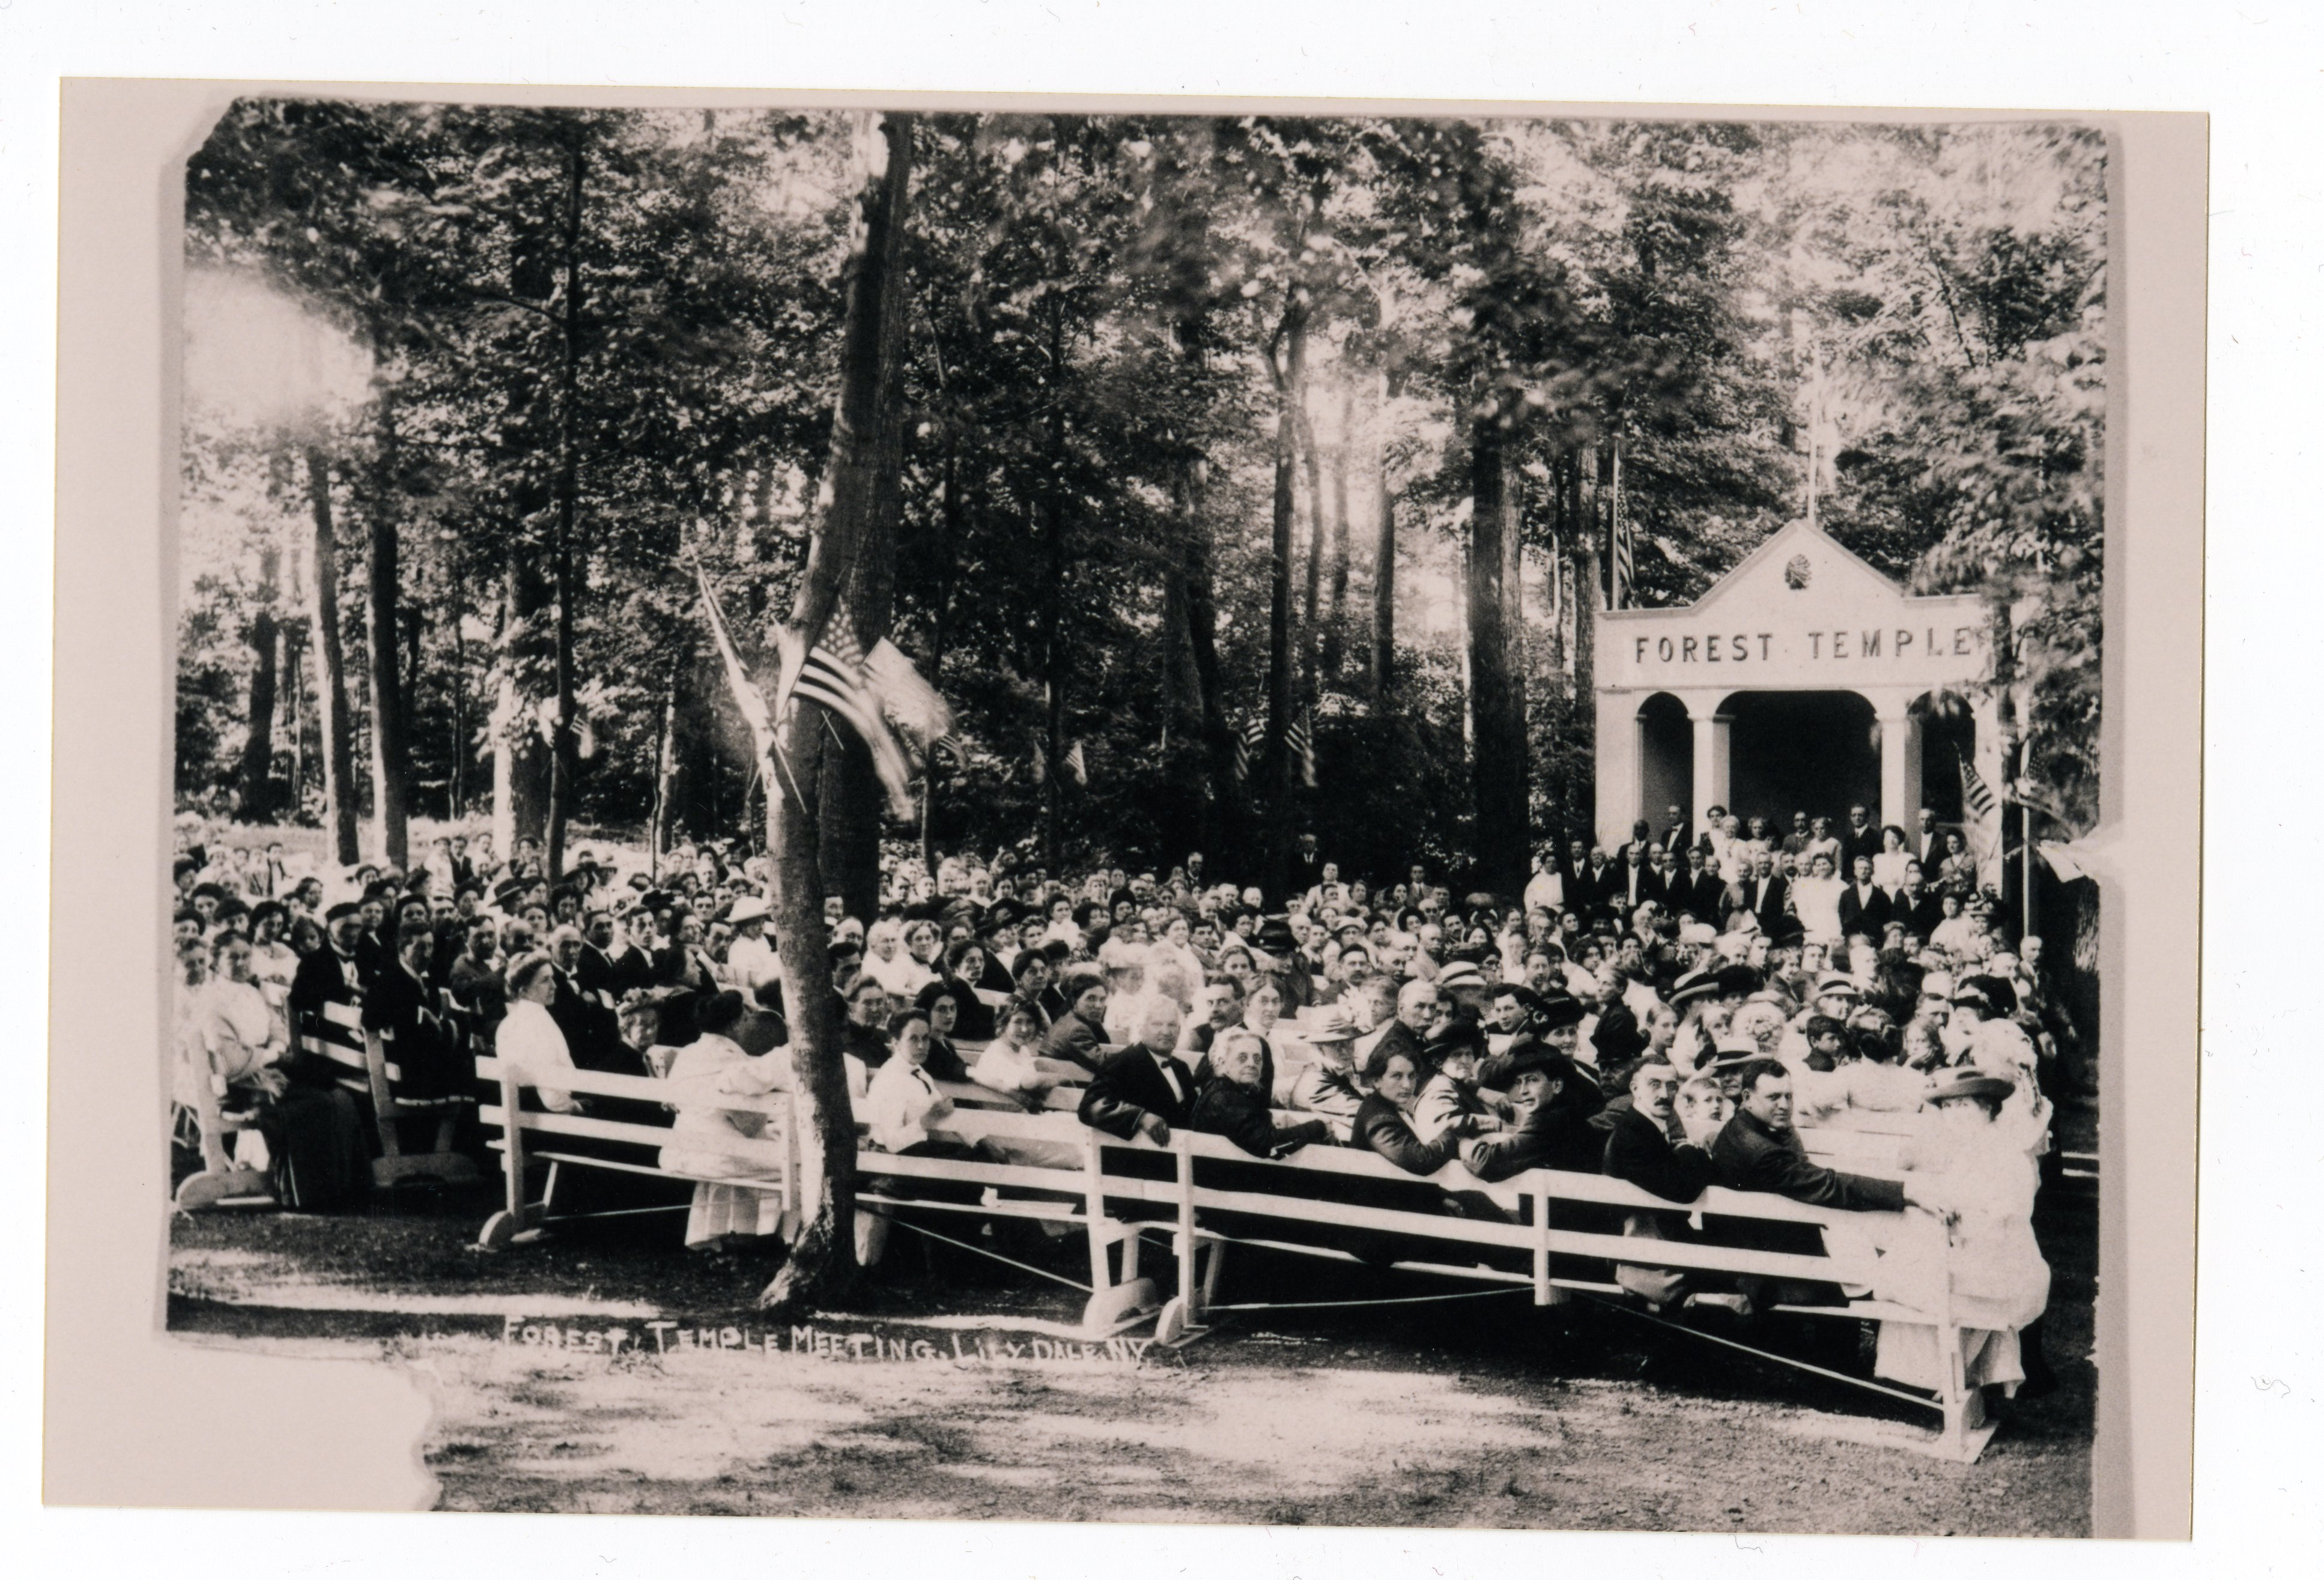 black and white photograph of crowd seated on benches in front of open-air temple structure in the woods